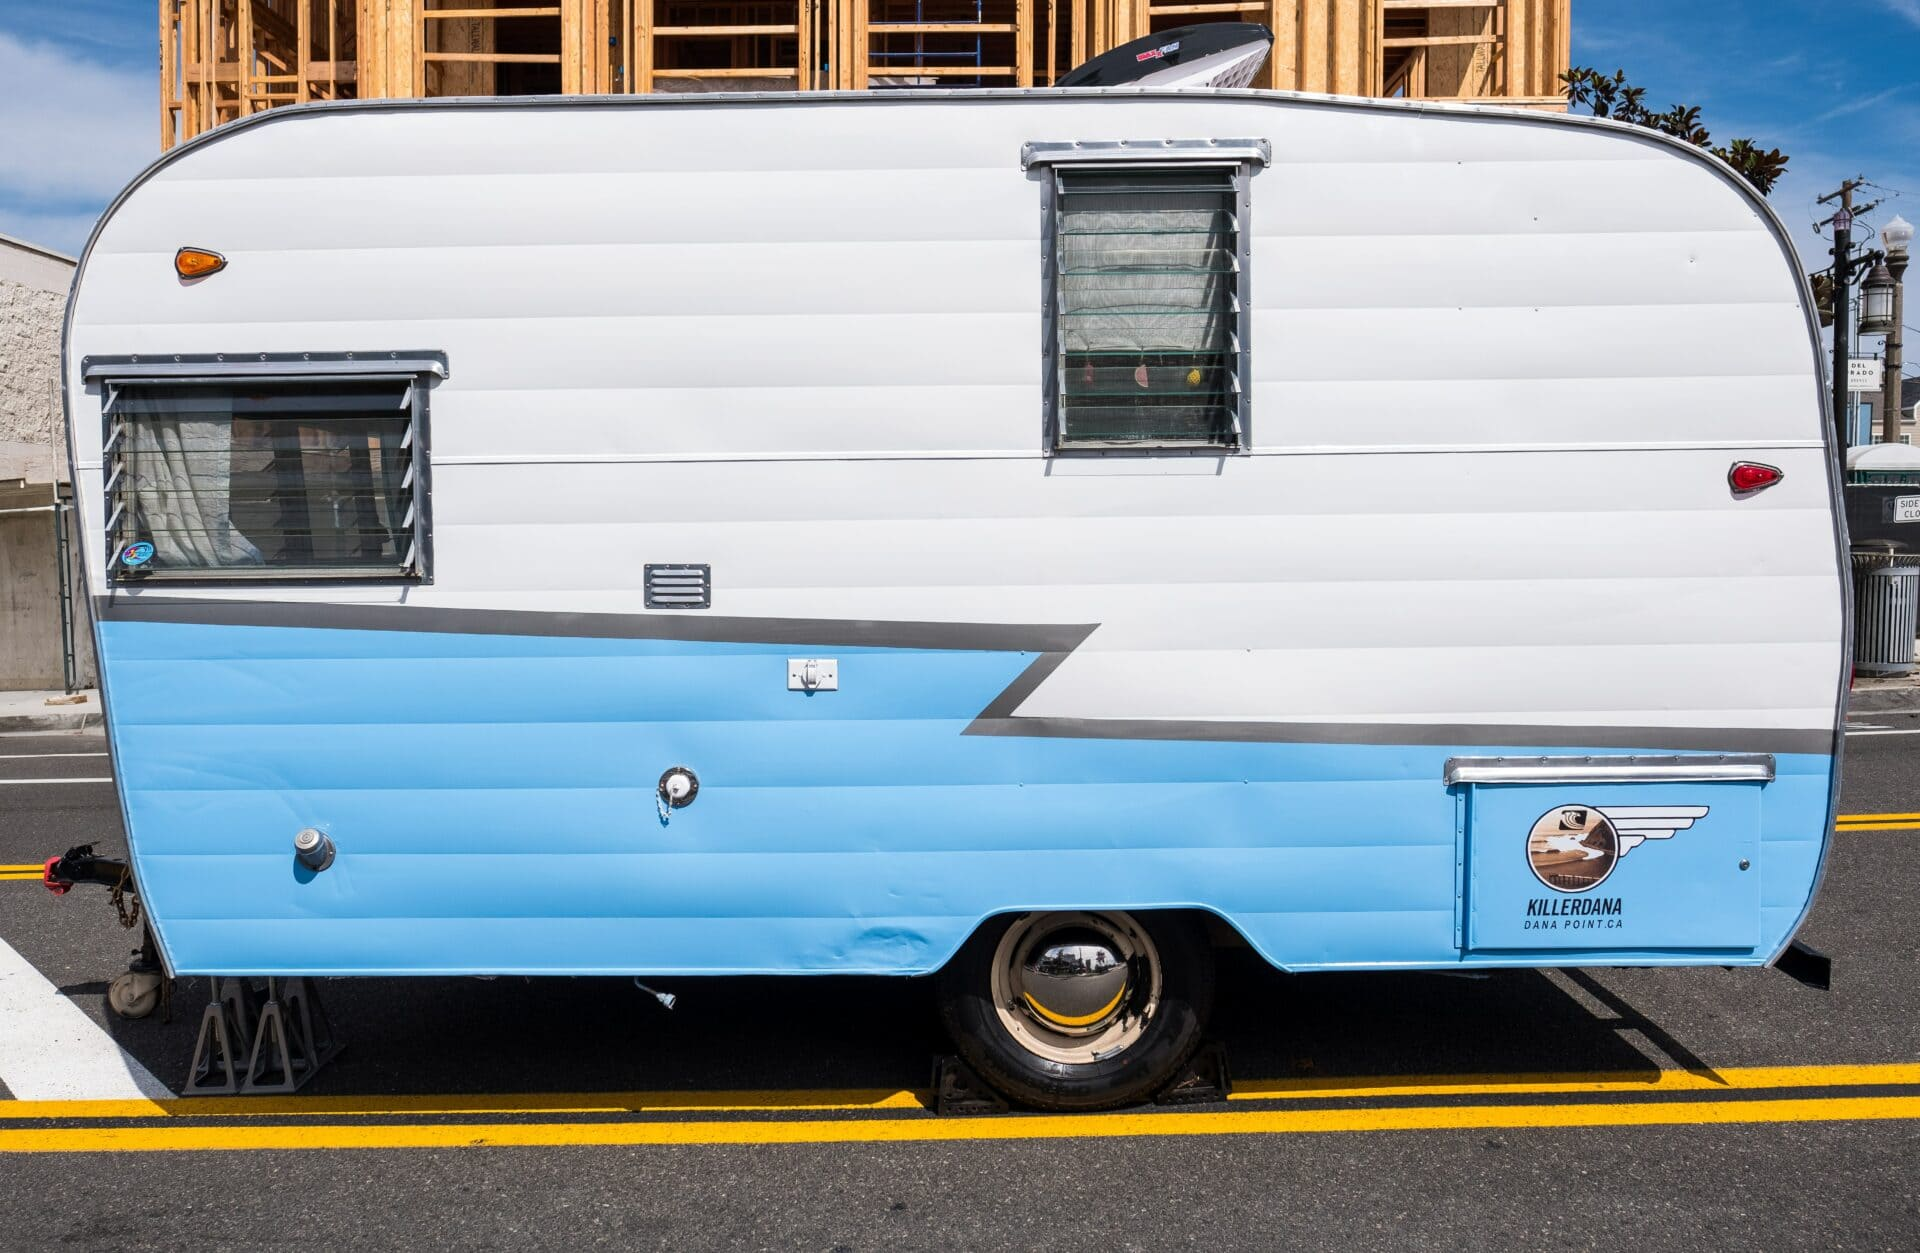 Extended RV warraties on travel trailers are less costly.